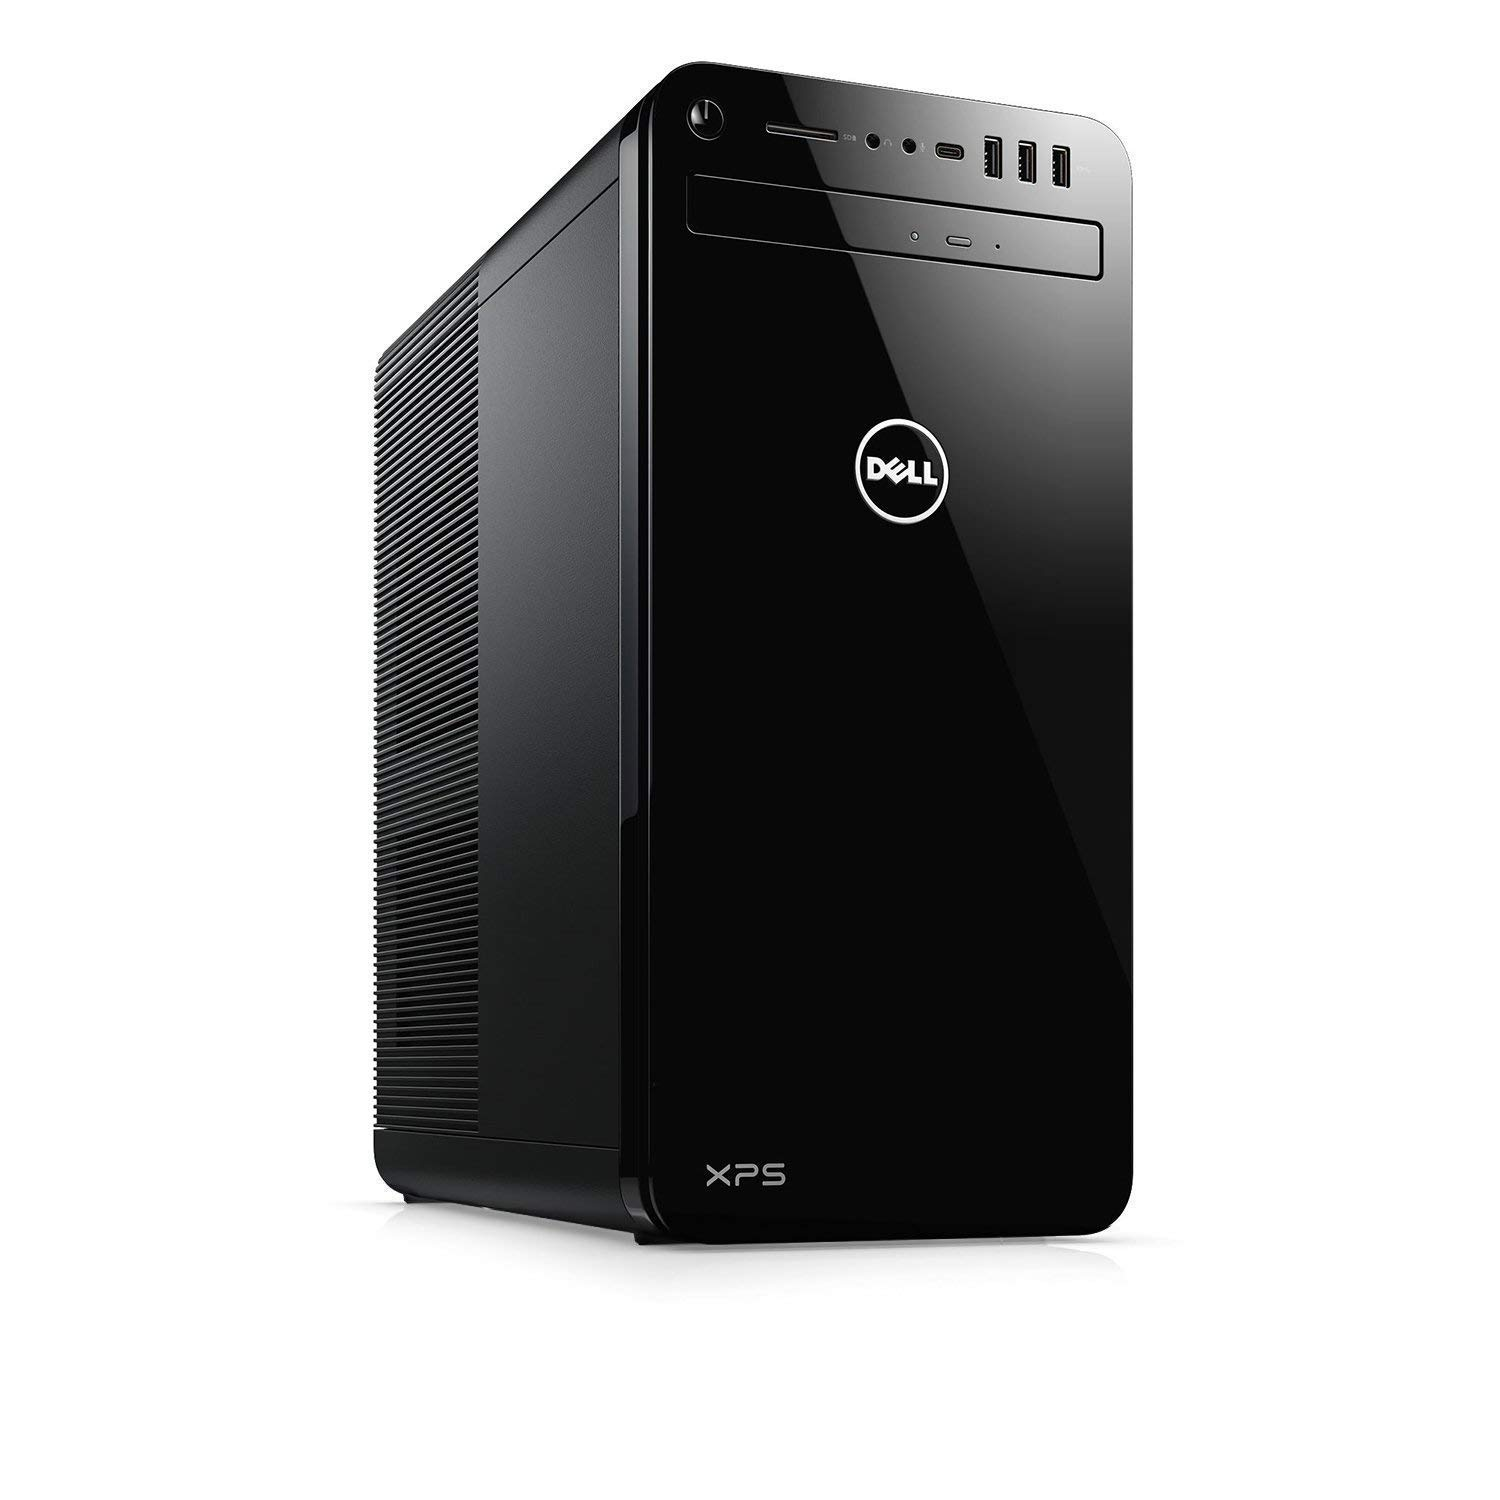 2019 Dell XPS 8930 Premium High Performance Desktop Computer, 8th Gen Intel Hexa-Core i7-8700 up to 4.6GHz, 16GB DDR4 RAM, 1TB 7200RPM HDD, 802.11ac WiFi, Bluetooth 4.2, USB 3.1, HDMI, Windows 10 Home